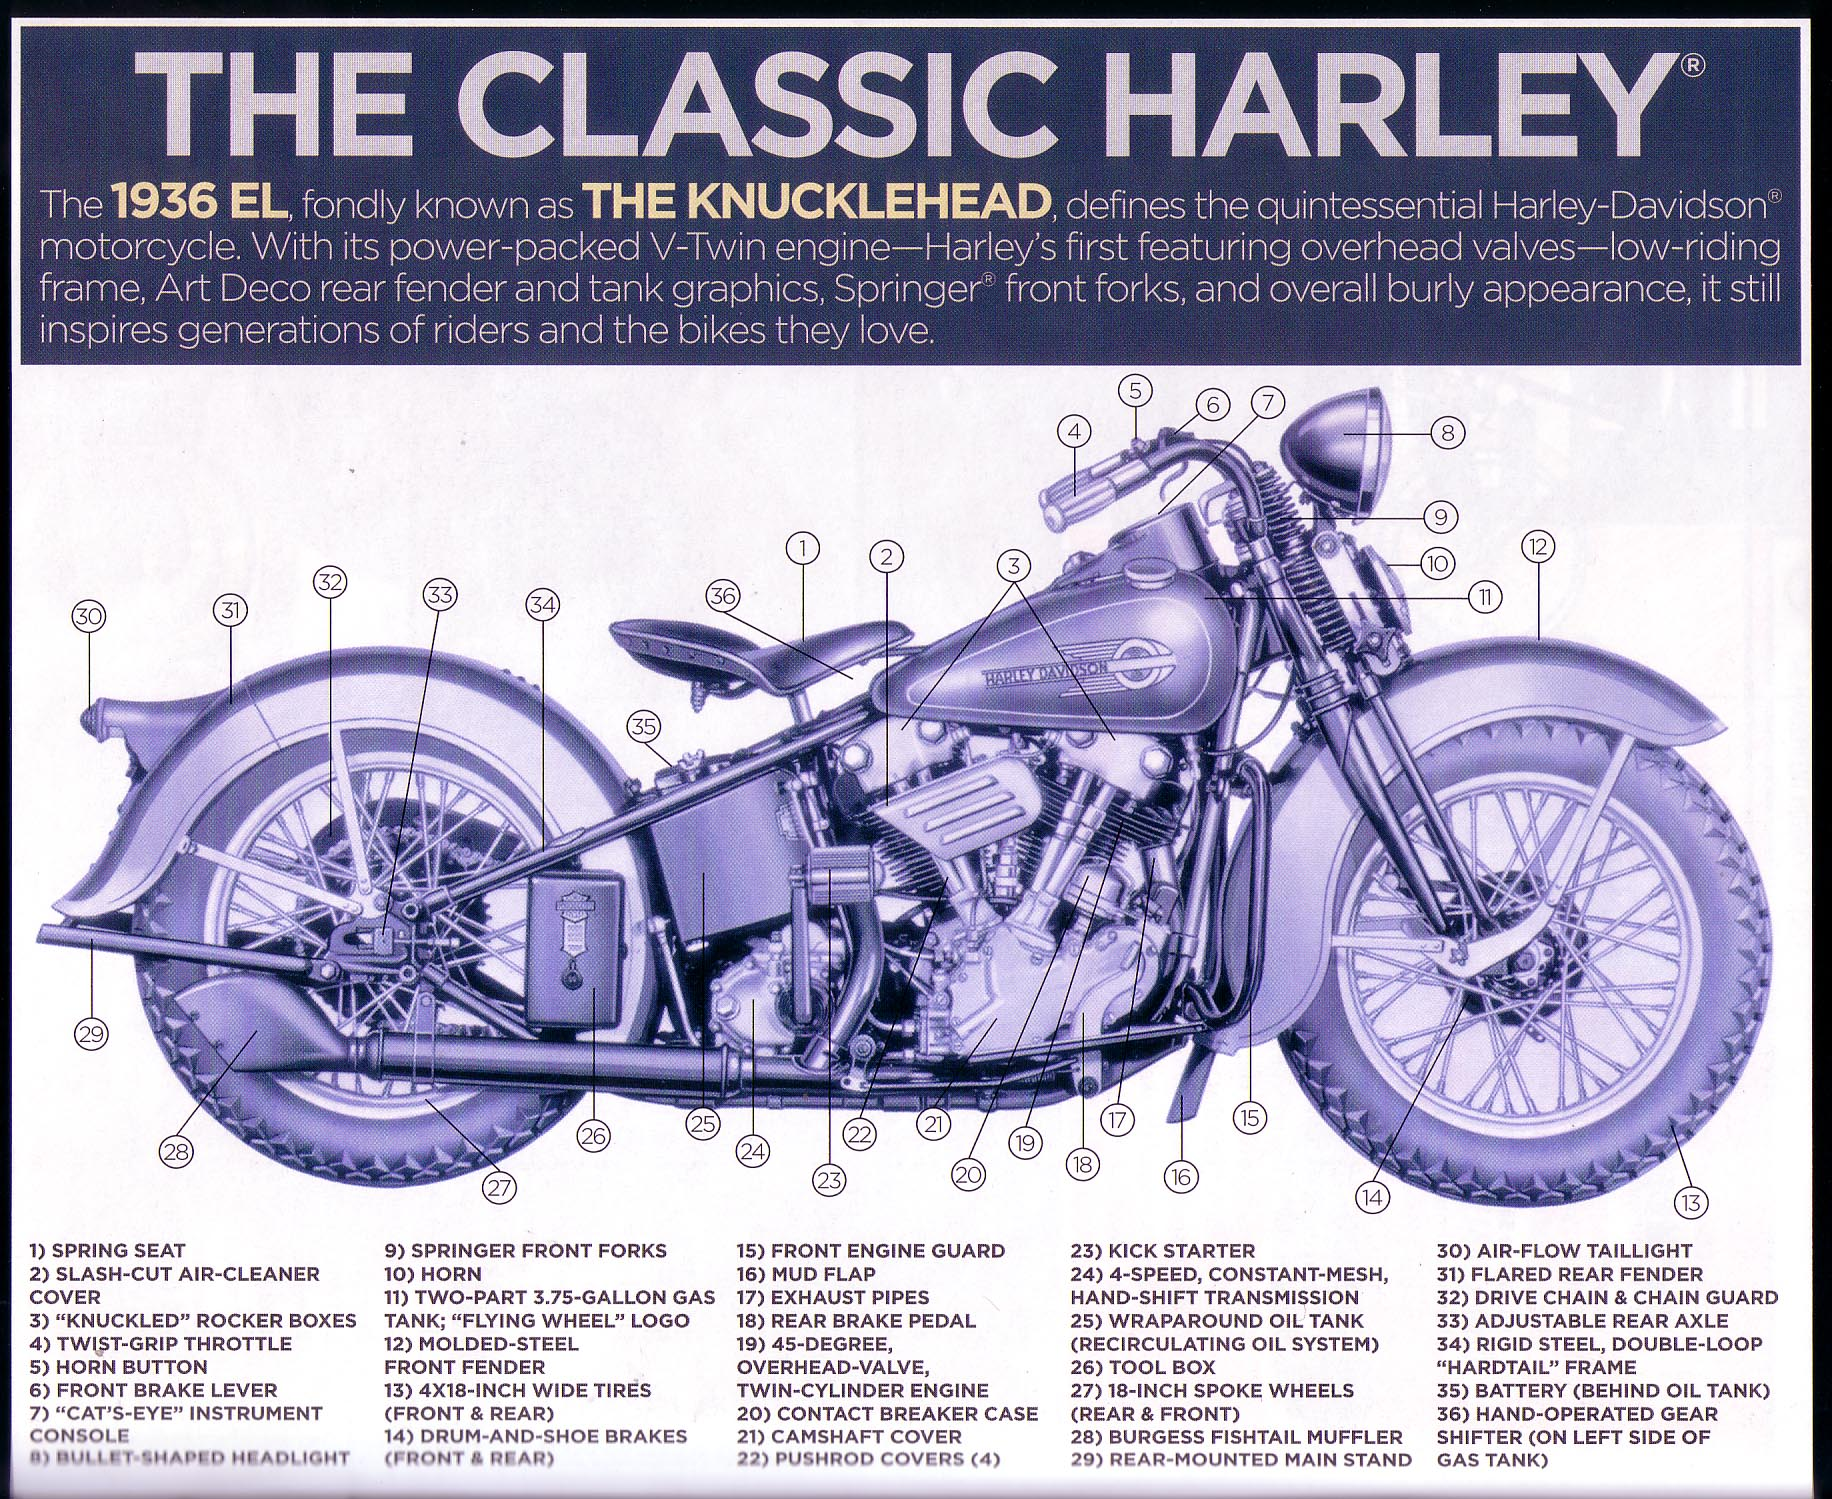 Harley Wiring Diagram Simple Guide About Davidson Specifications Photos Pictures Davidsons Indians Manual Download